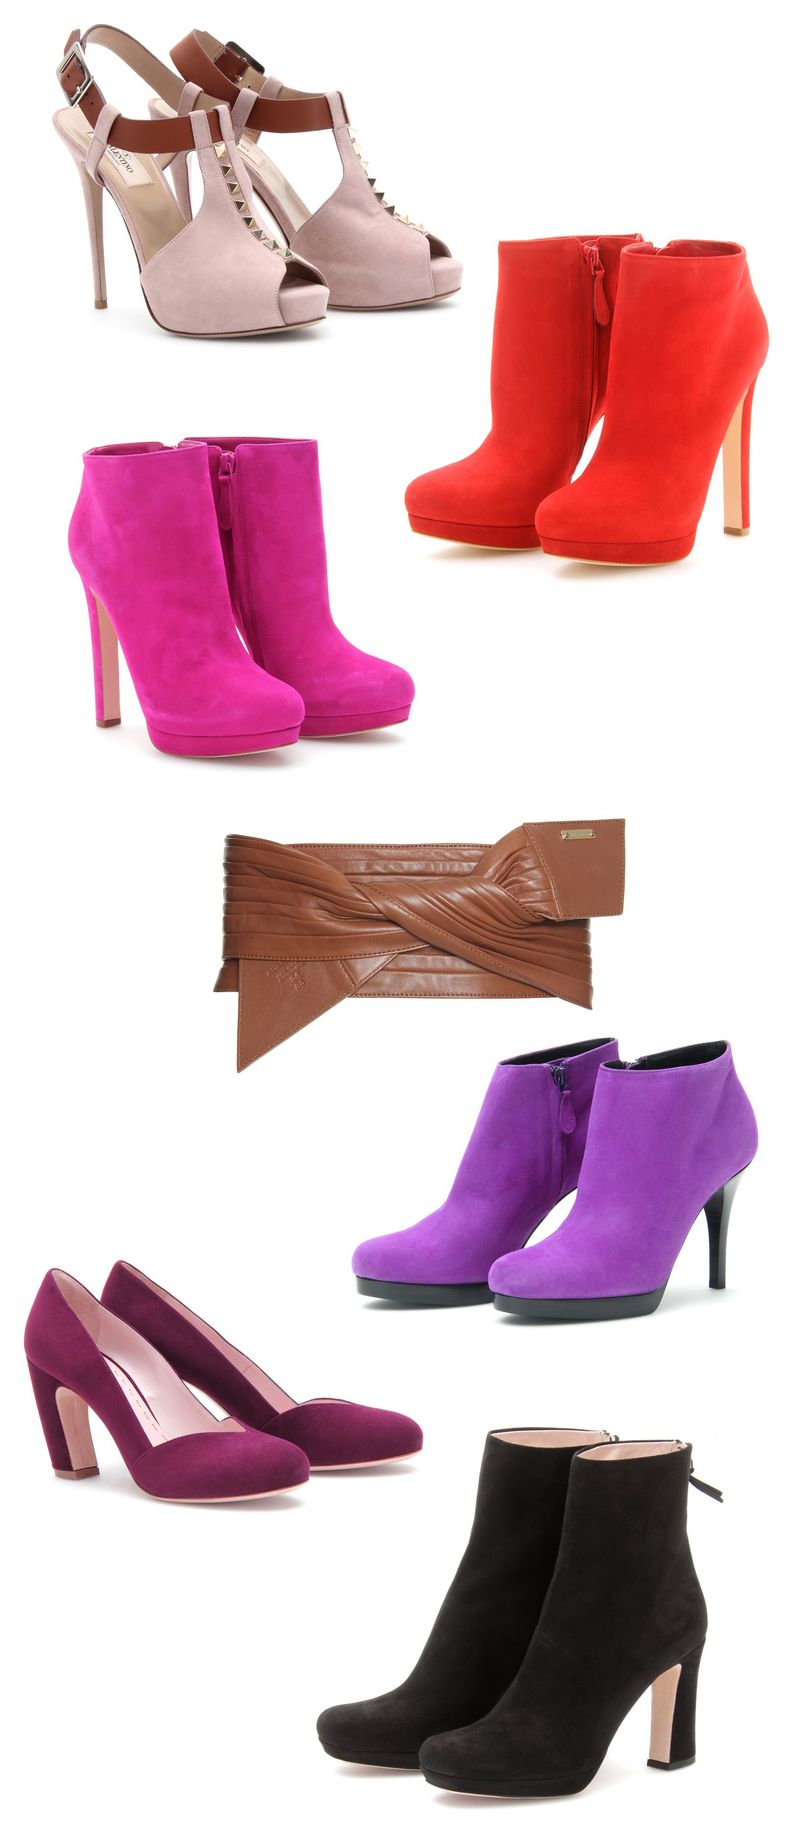 Shoes -fall 2011